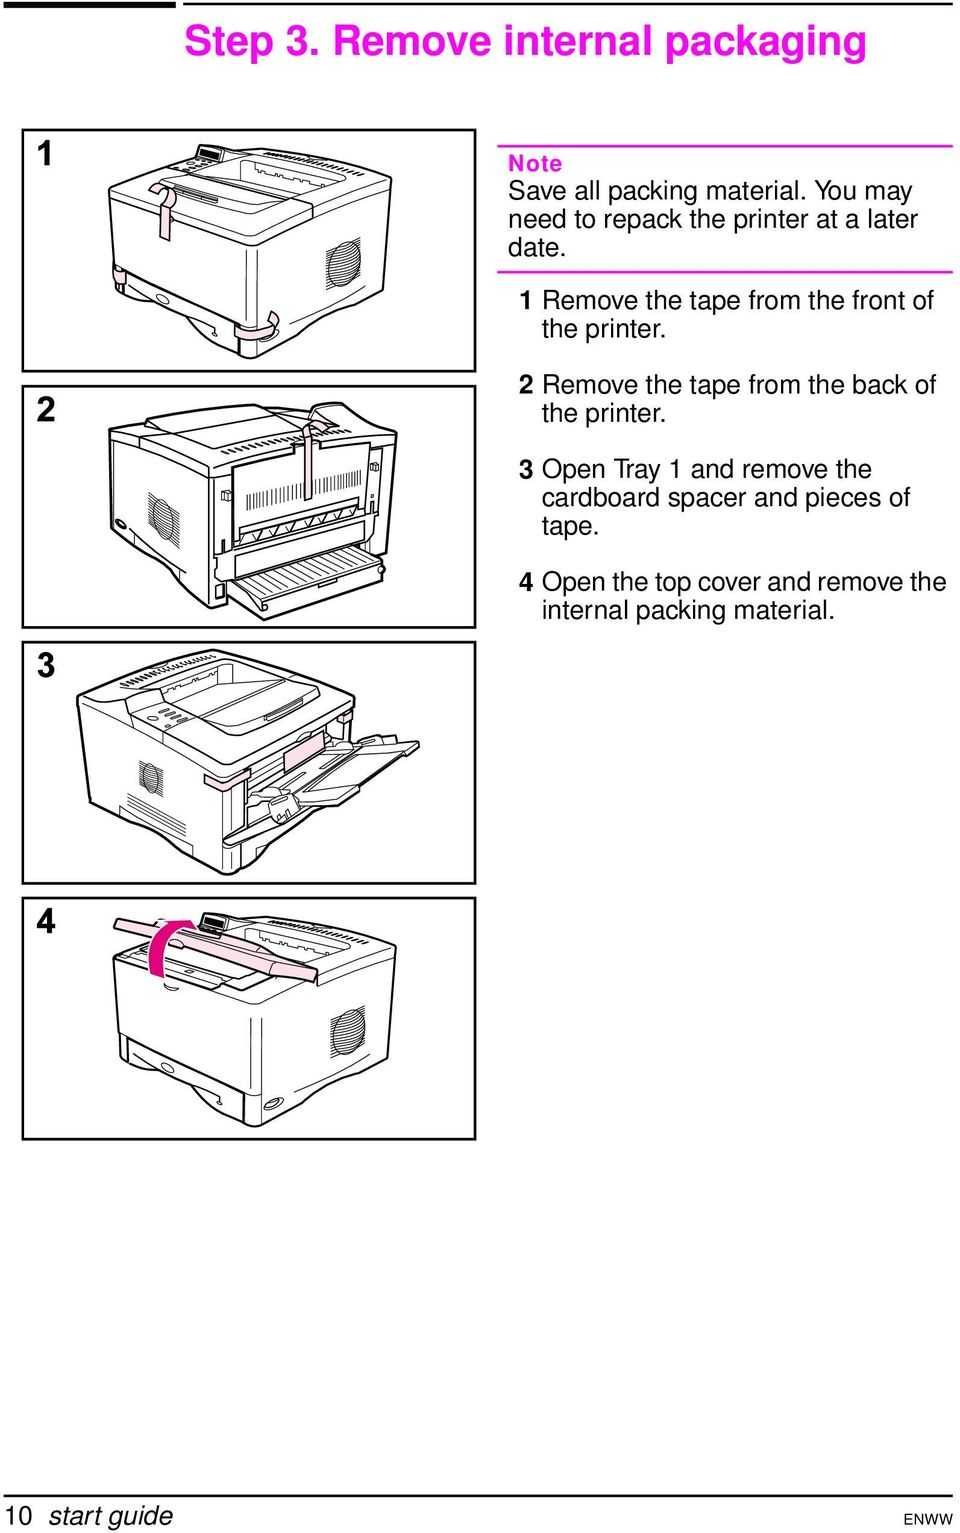 1 Remove the tape from the front of the printer.